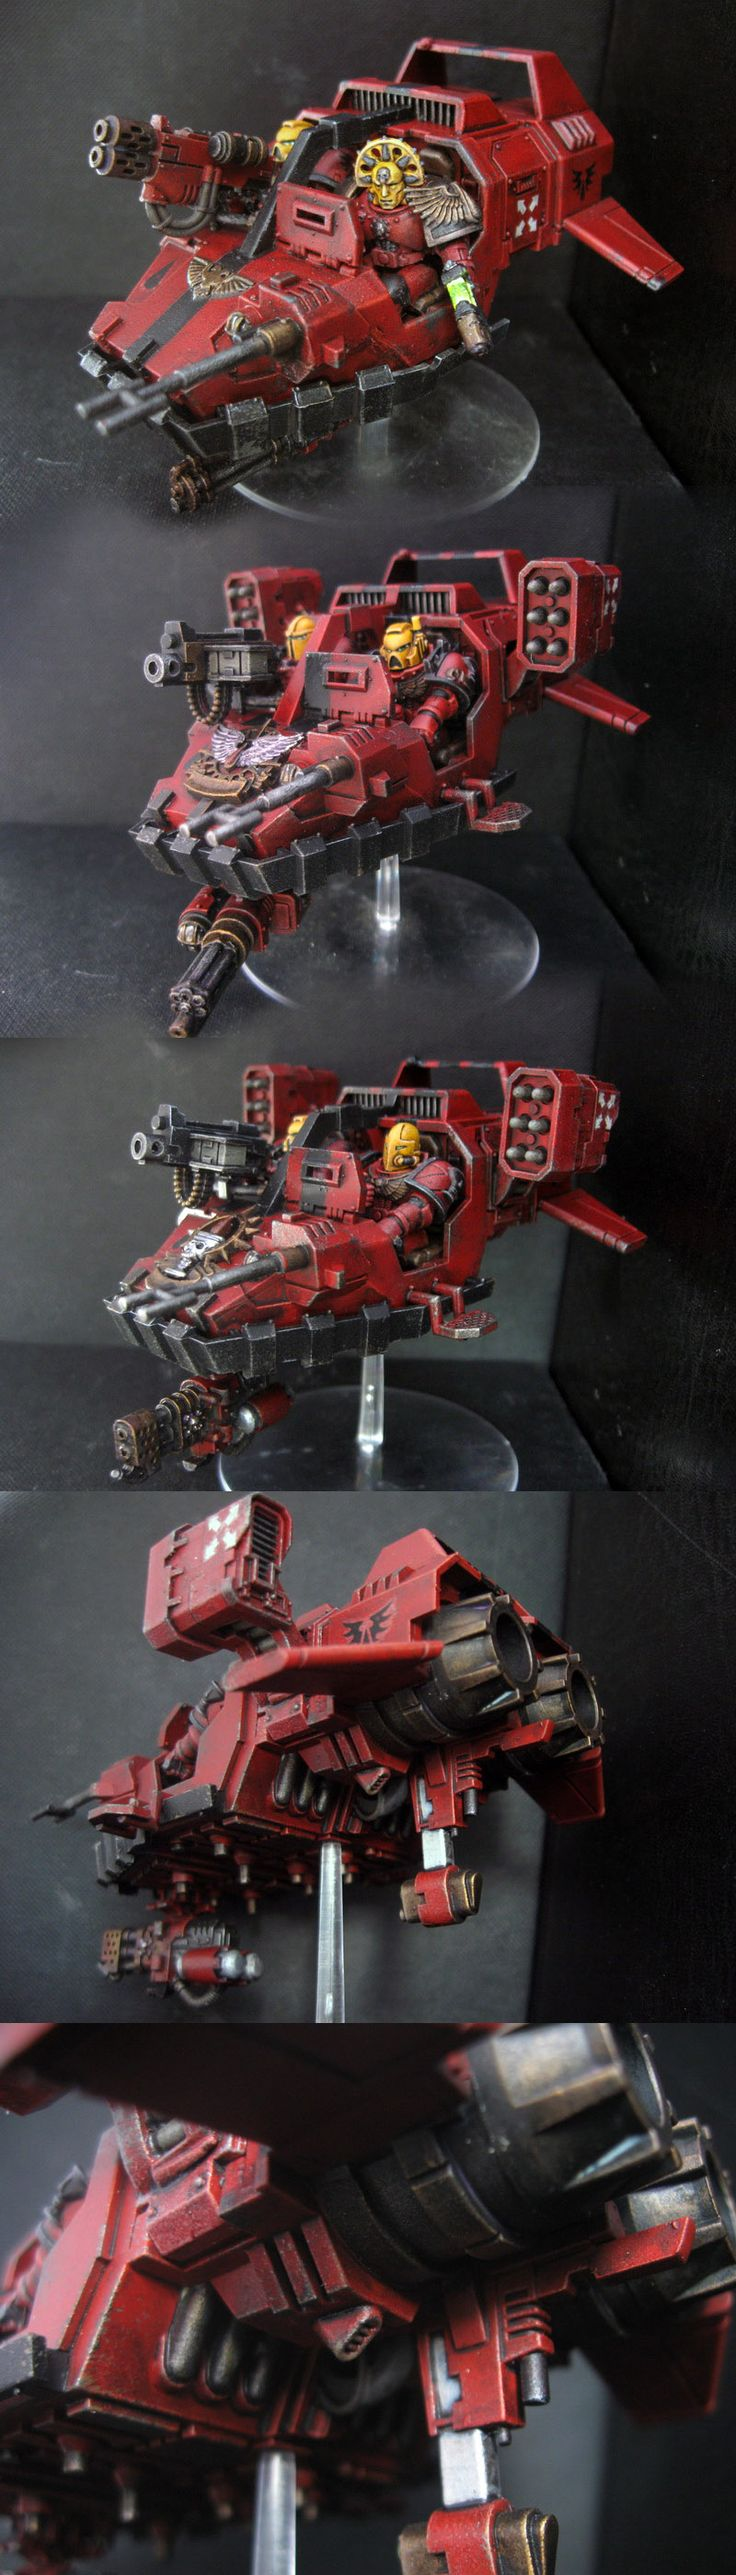 Blood Angels Army Project (pic carpet bombing) - Page 27